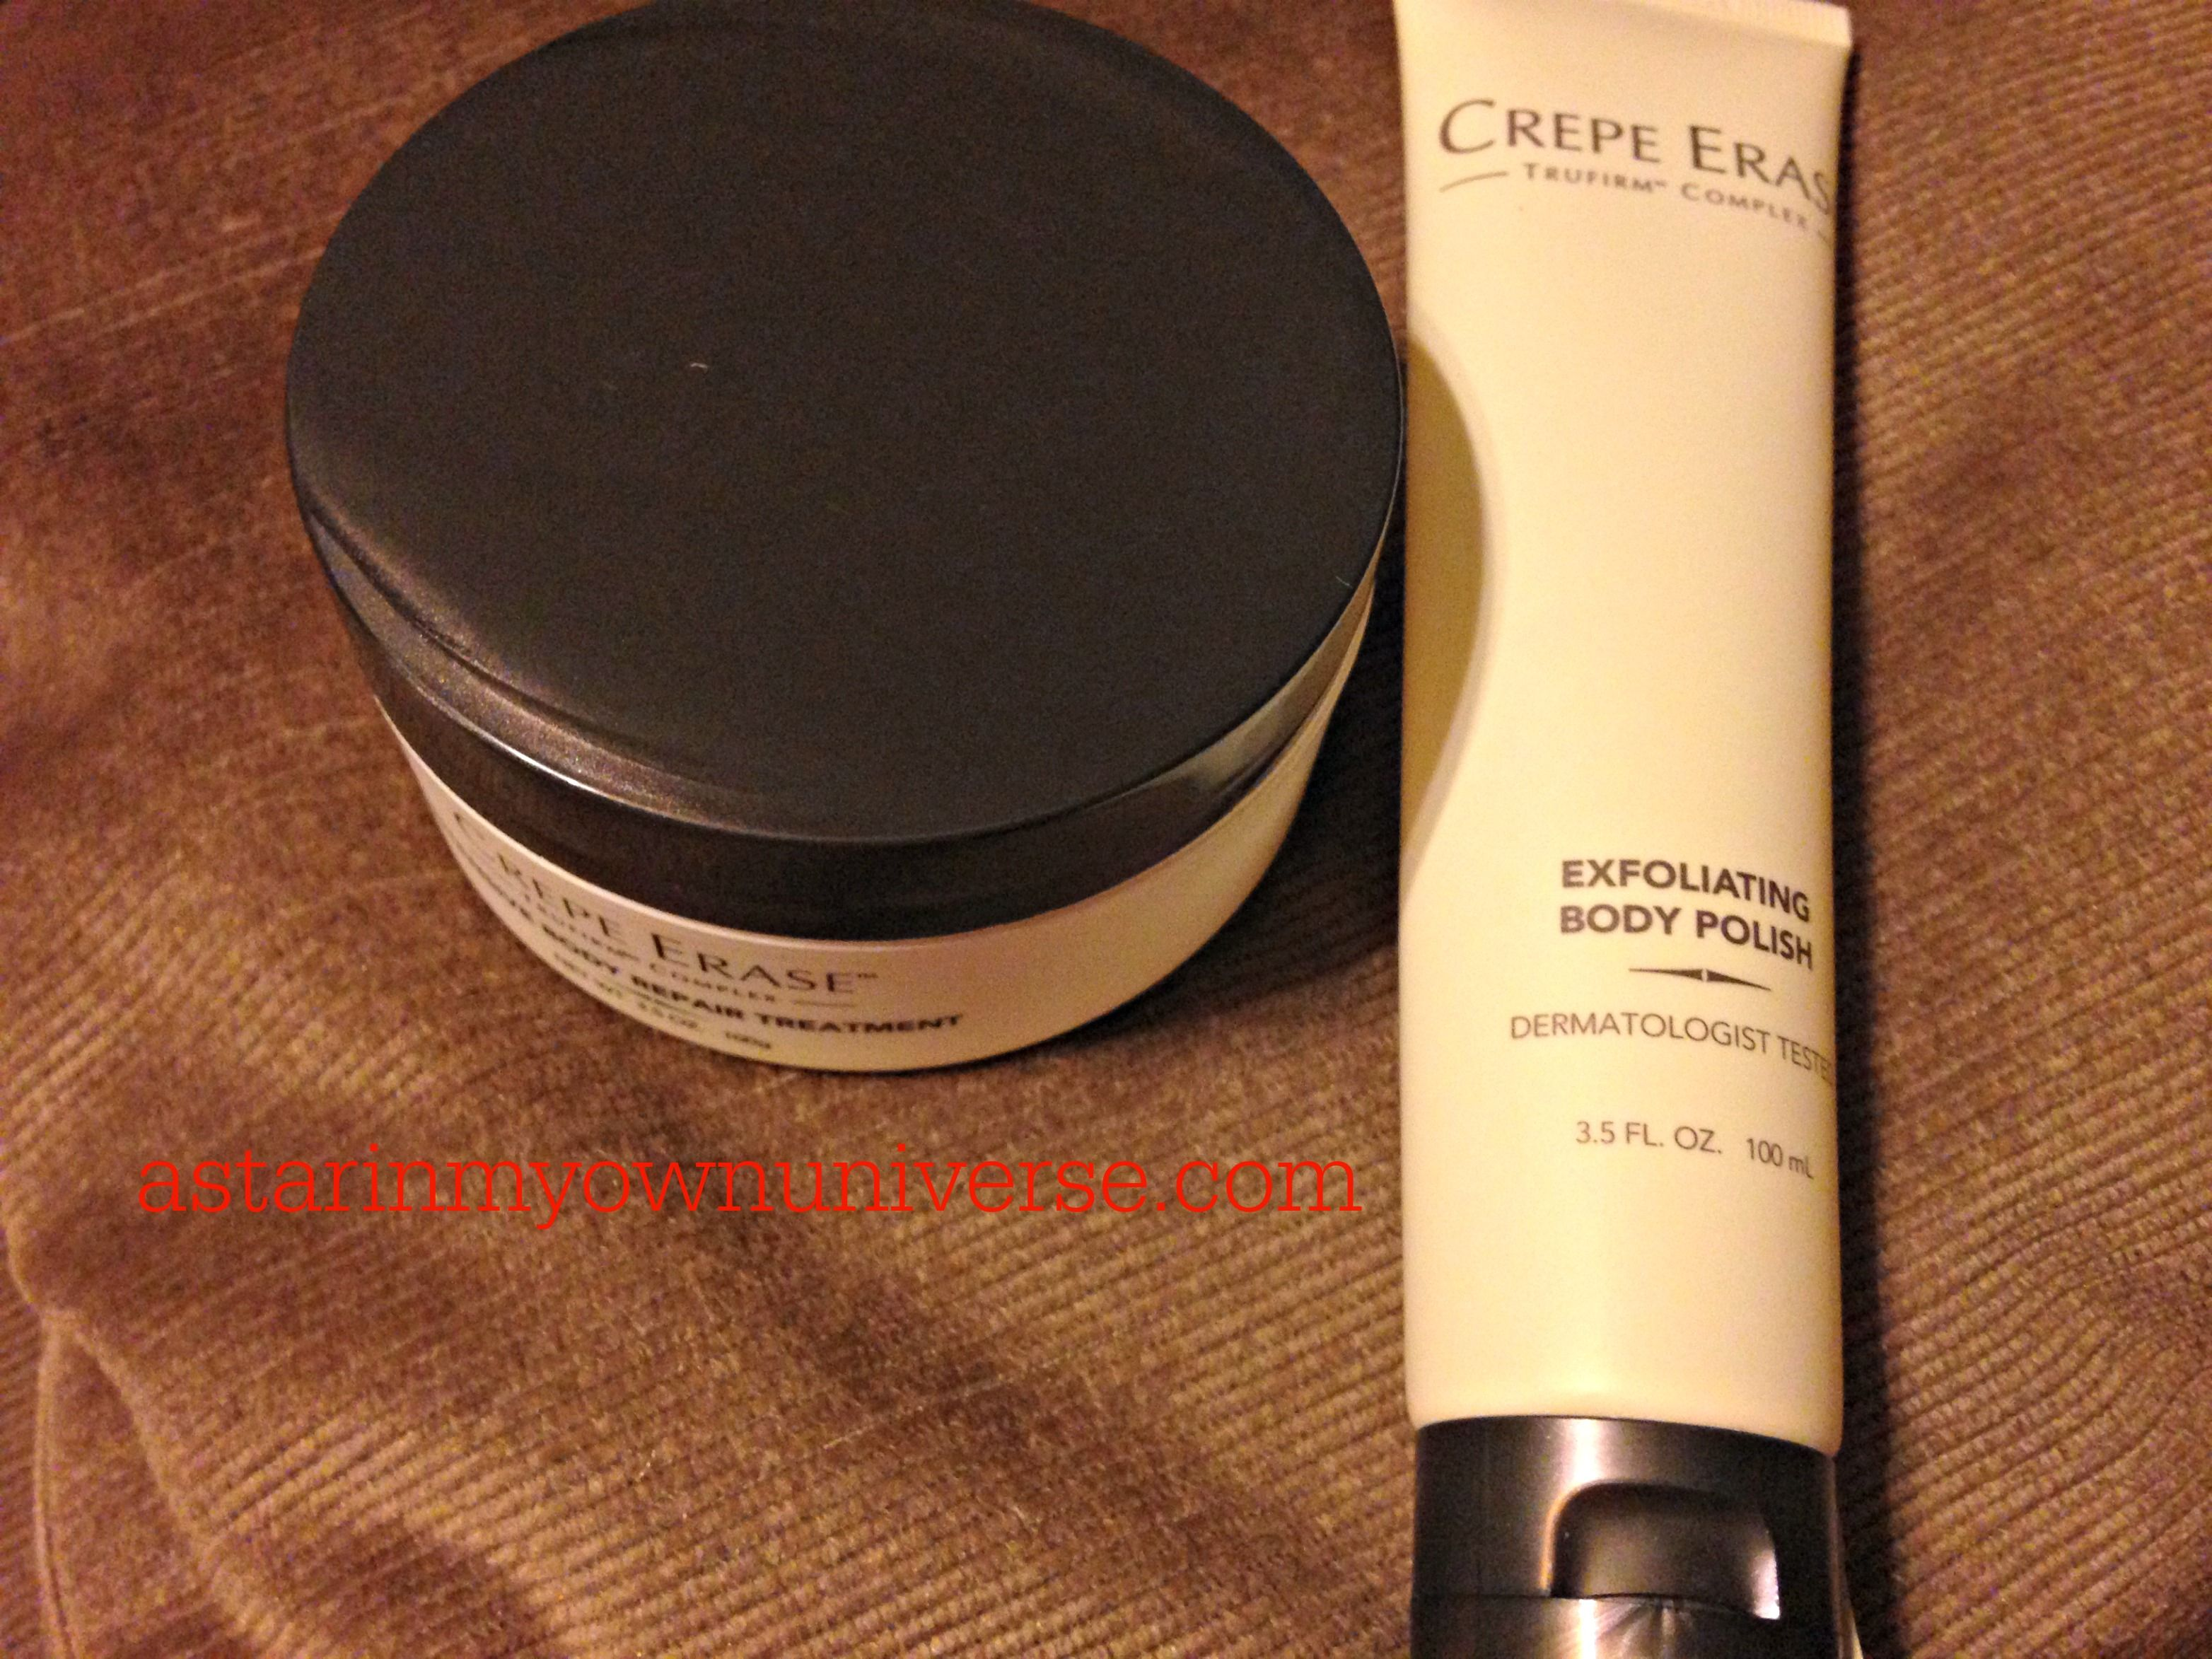 #CrepeErase Review #IC #Sponsored